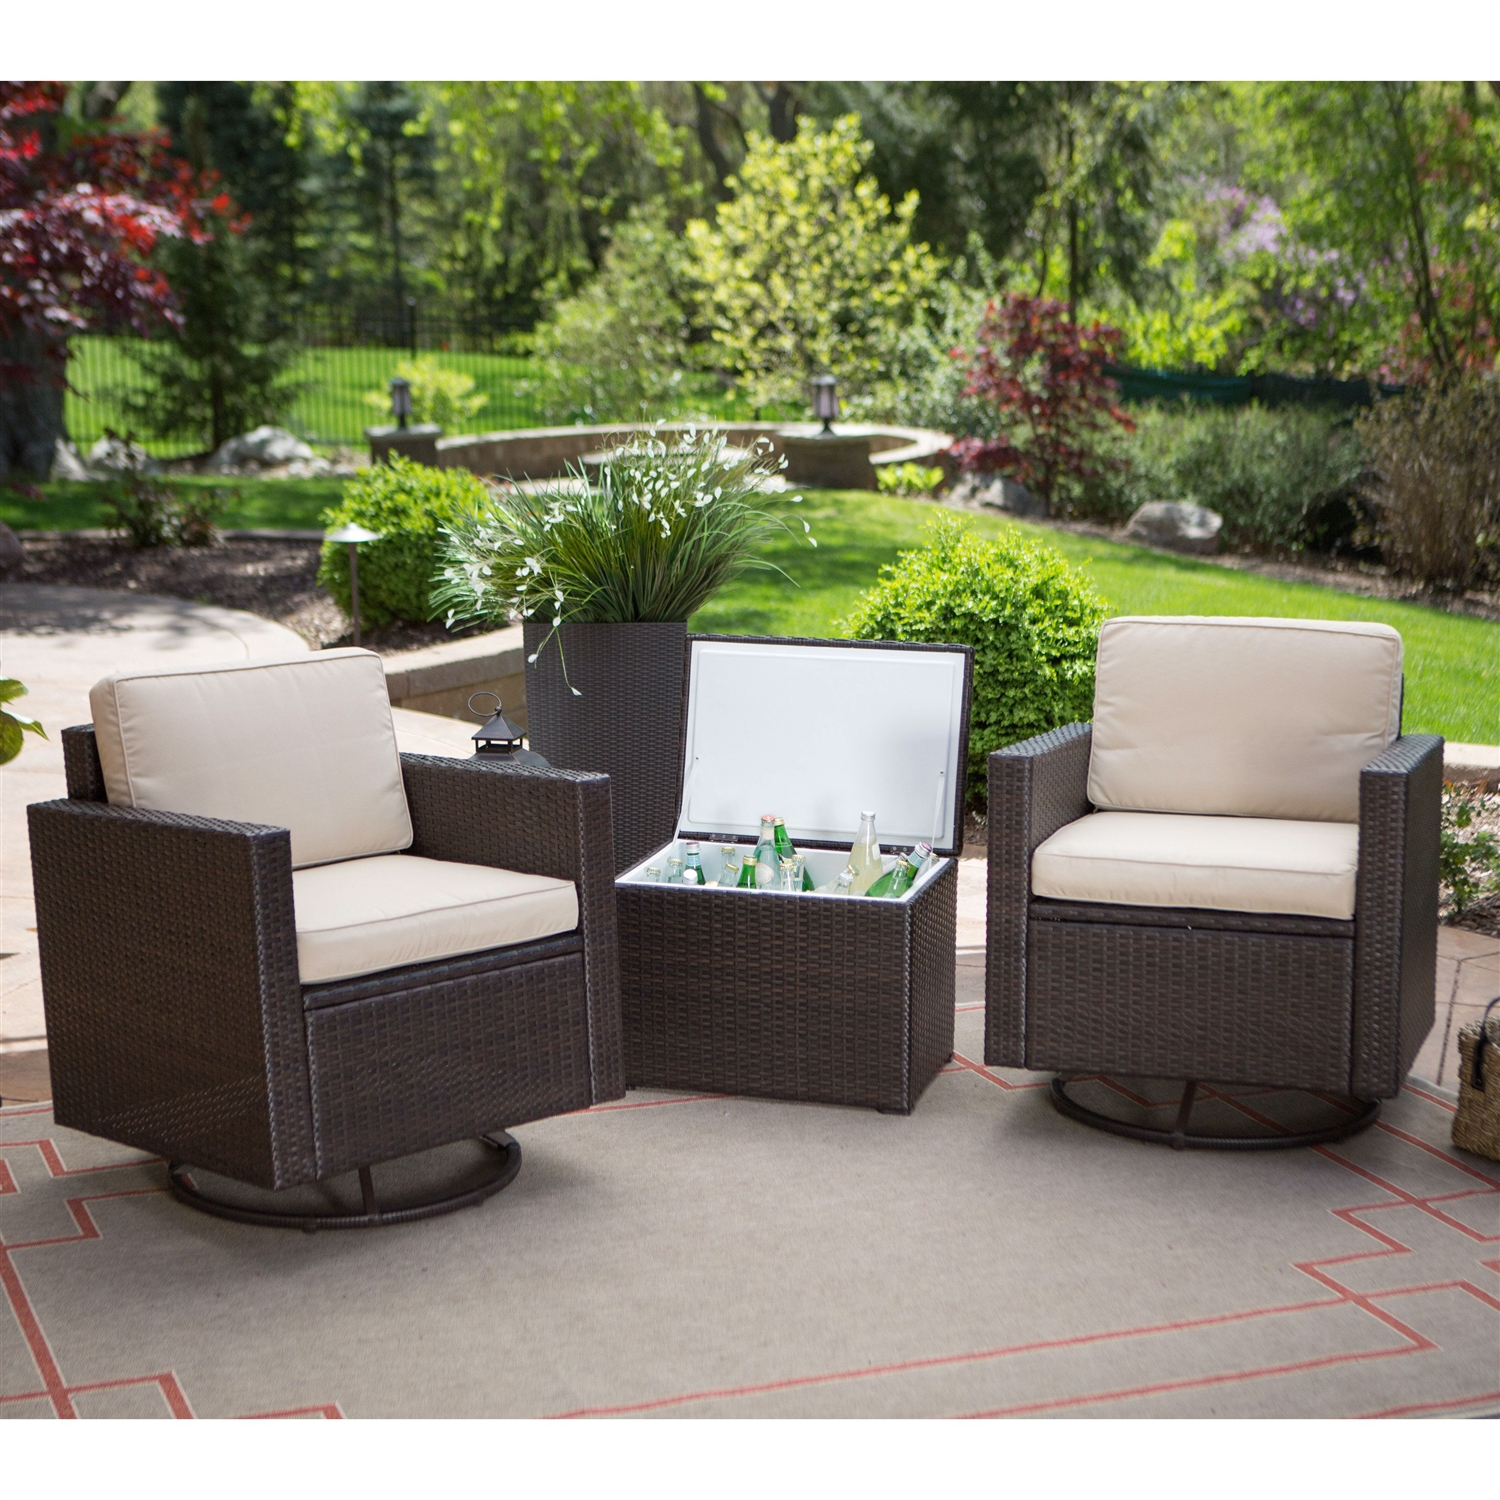 Outdoor Wicker Resin 3-Piece Patio Furniture Set with 2 Chairs and